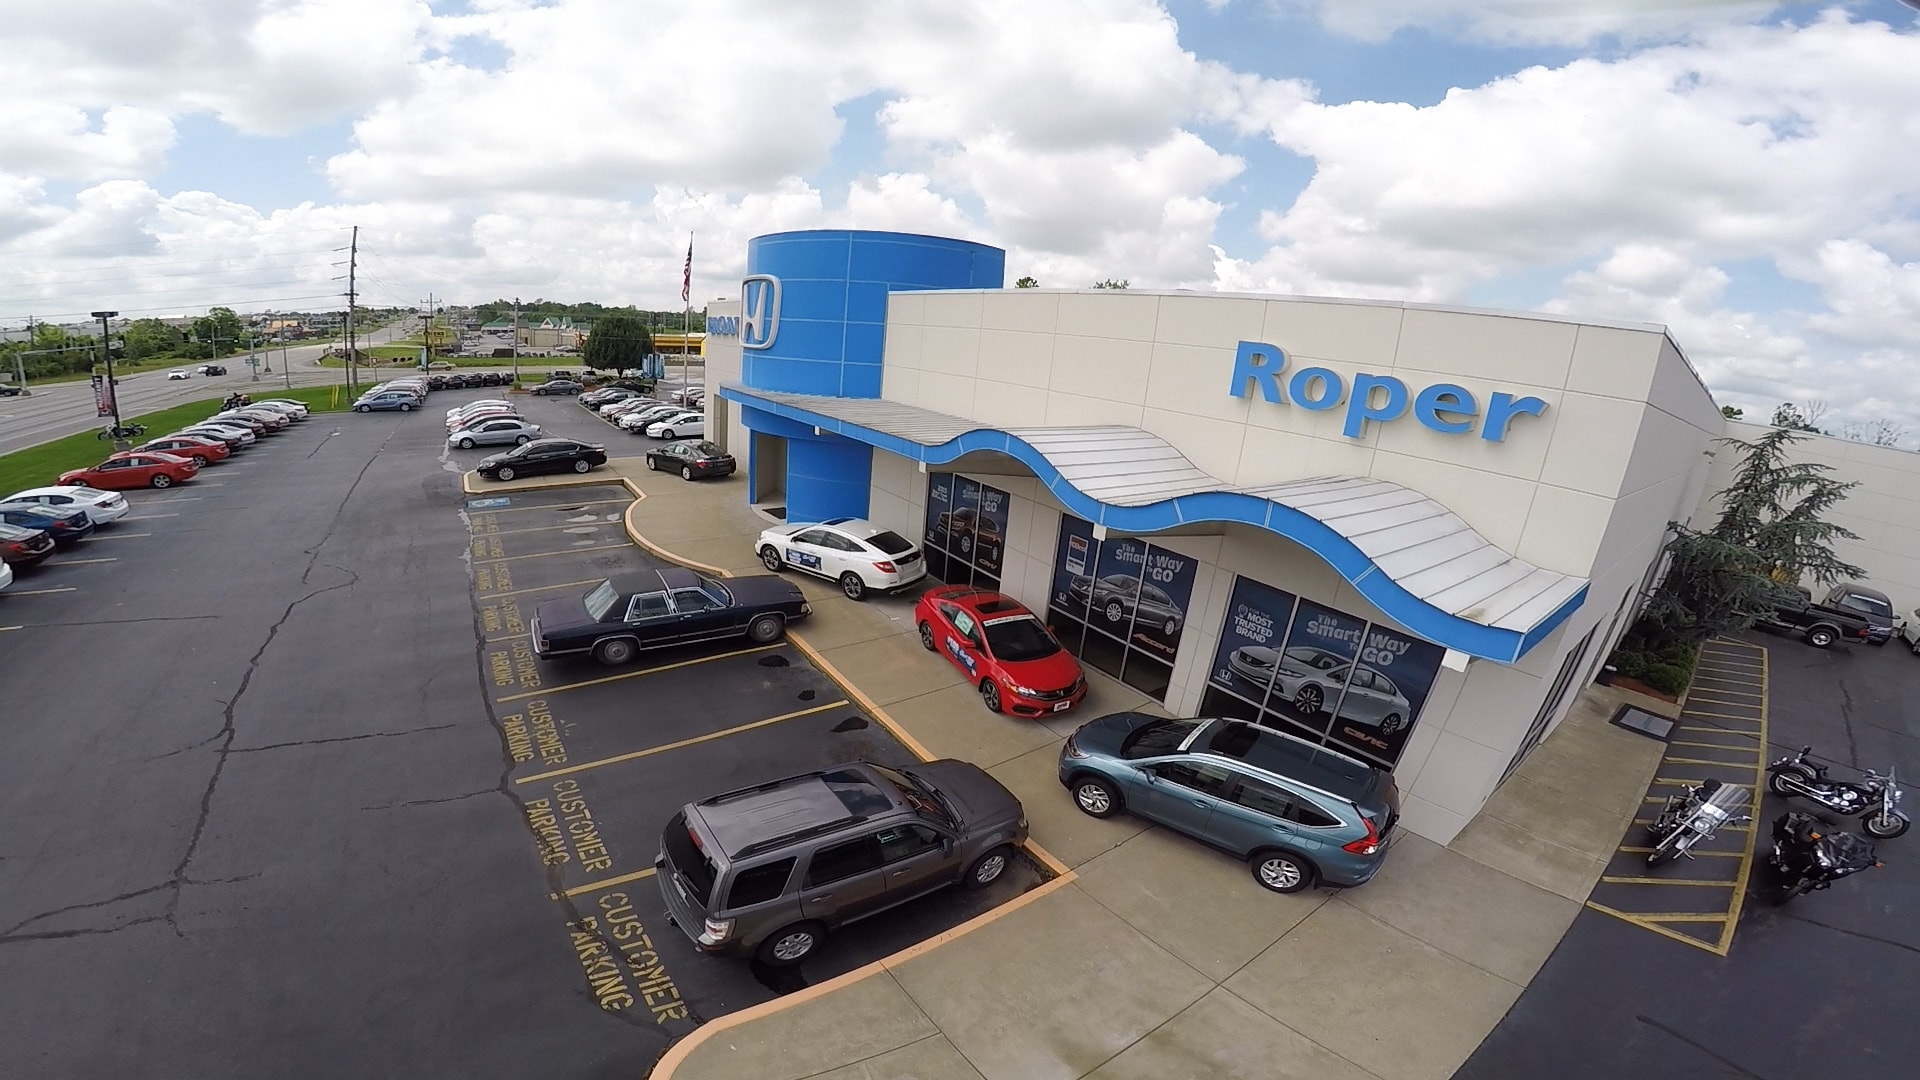 High Quality About Roper Honda In Joplin, MO